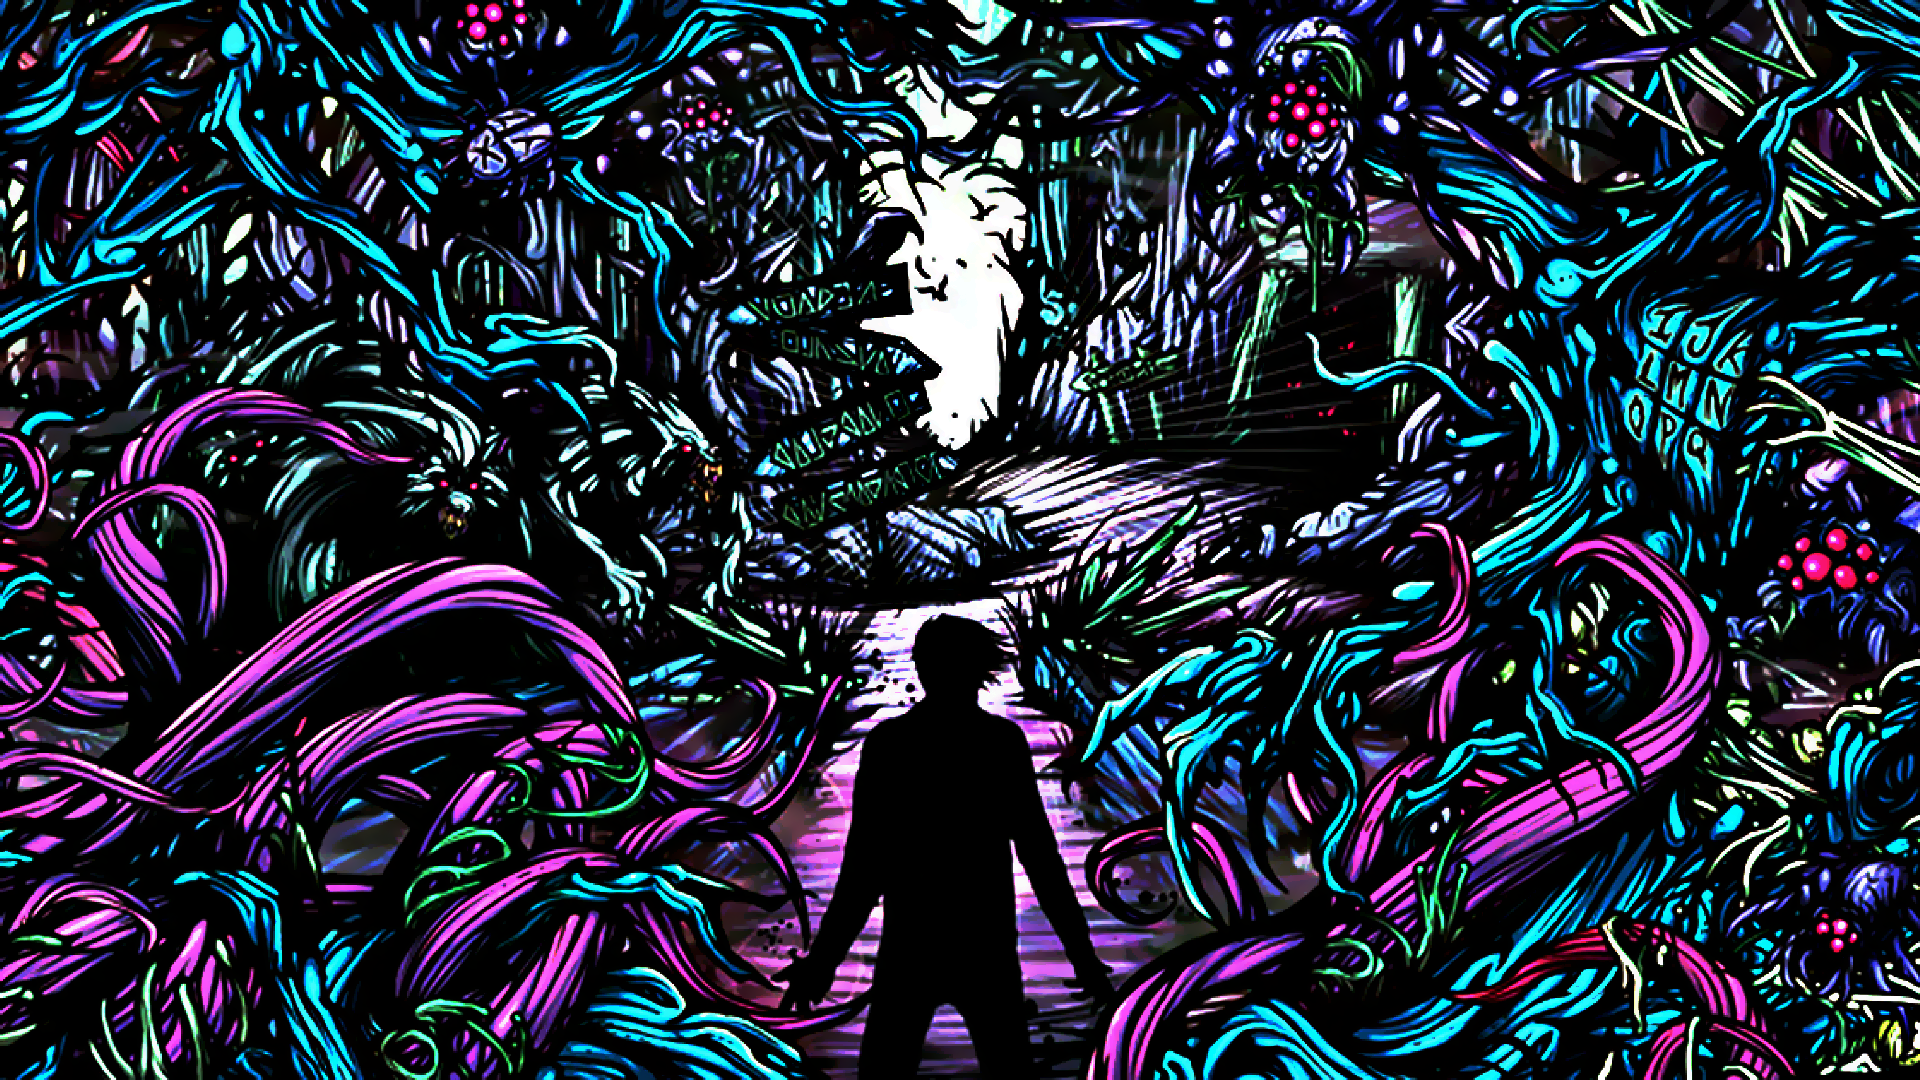 A Day To Remember Homesick Album Cover Wallpaper Images 1920x1080